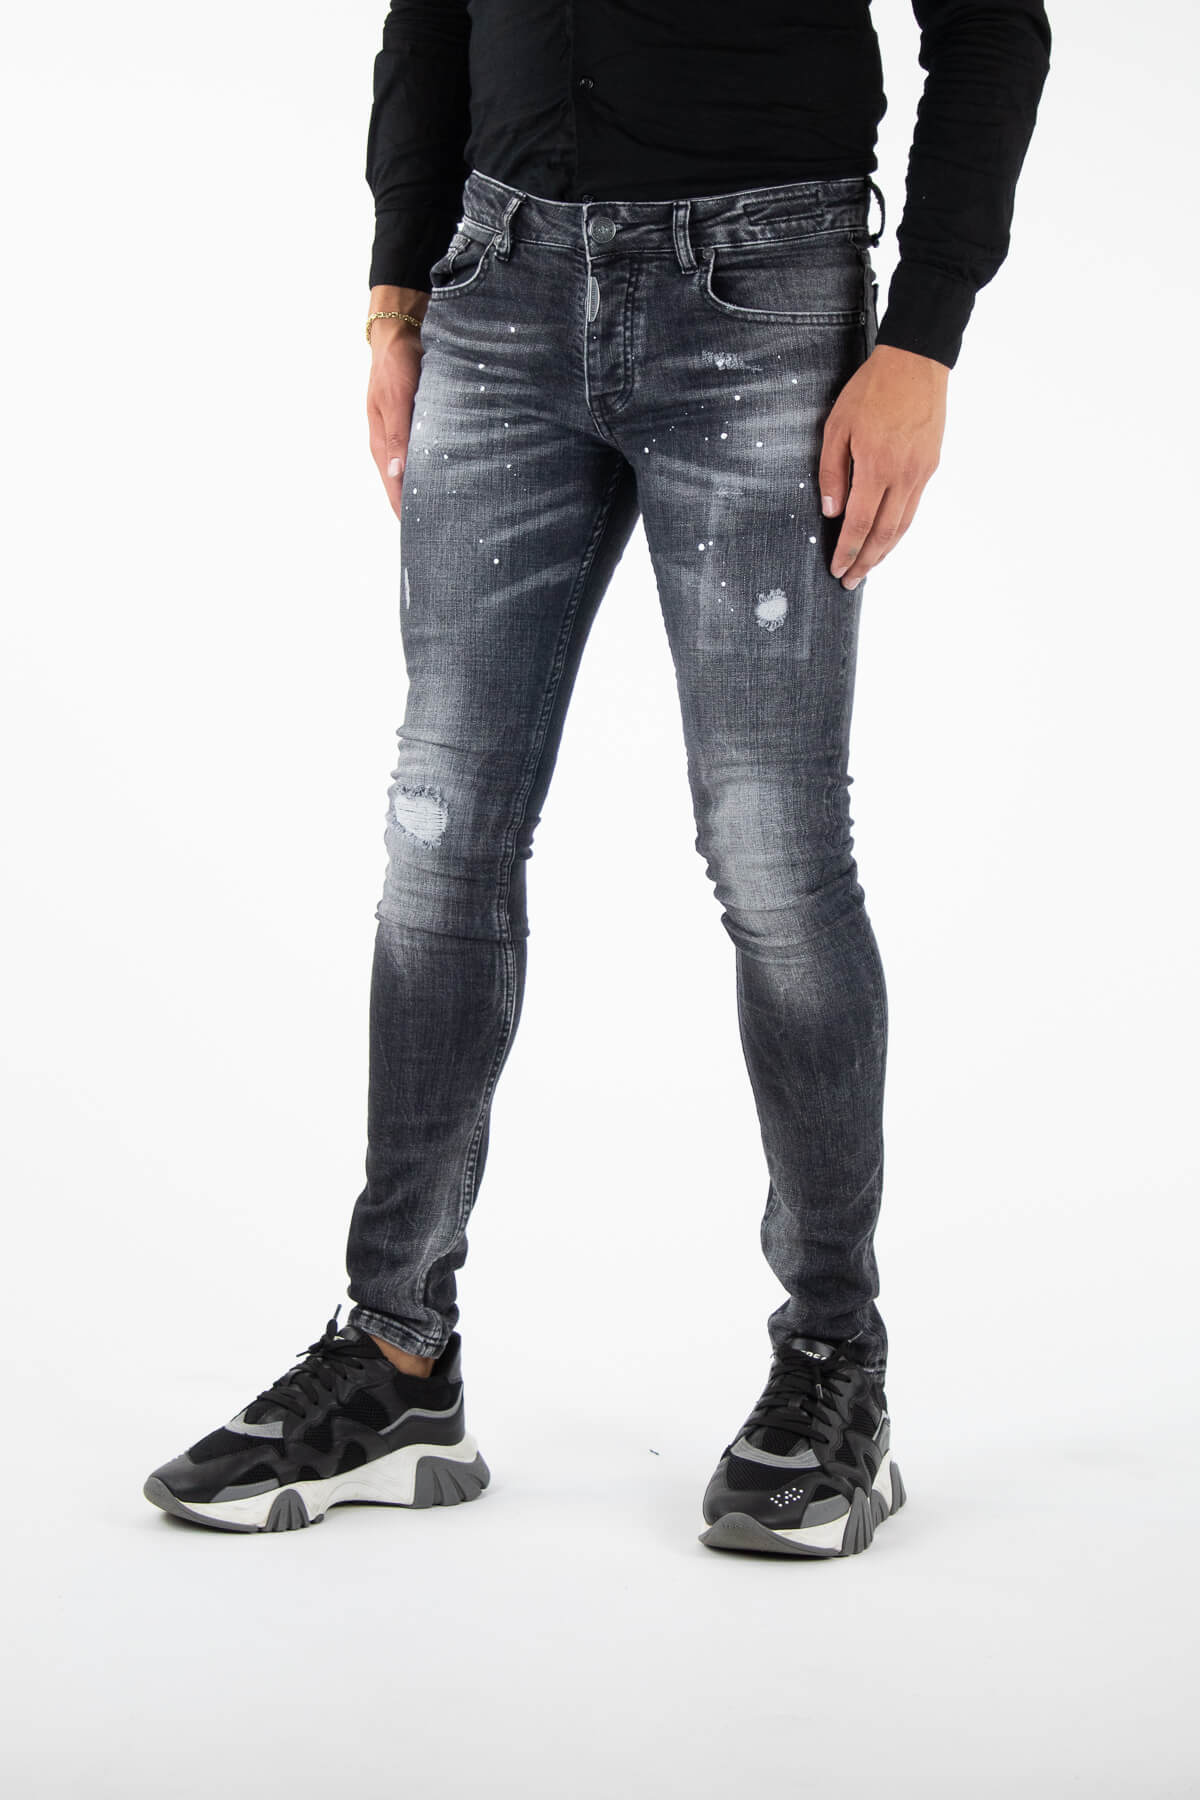 Palencia Deluxe Grey Jeans-3